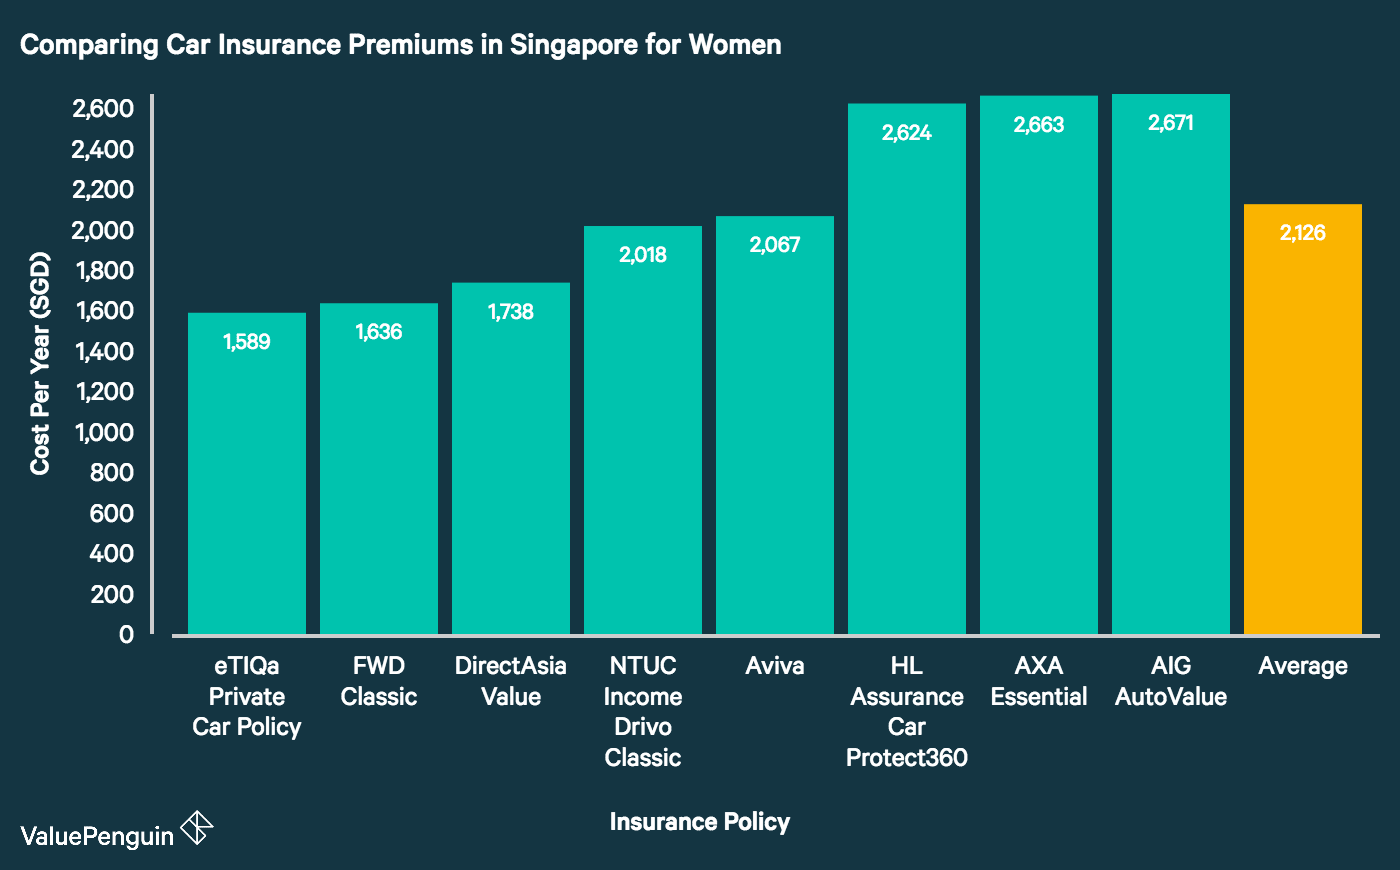 This graph compares car insurance rates offered to women by eight of Singapore's major insurance providers. It demonstrates that Etiqa, FWD and DirectAsia lead the pack with the cheapest premiums on the market. Meanwhile, AIG, HL Assurance (Hong Leong) and AXA have among the priciest premiums among the companies we studied.